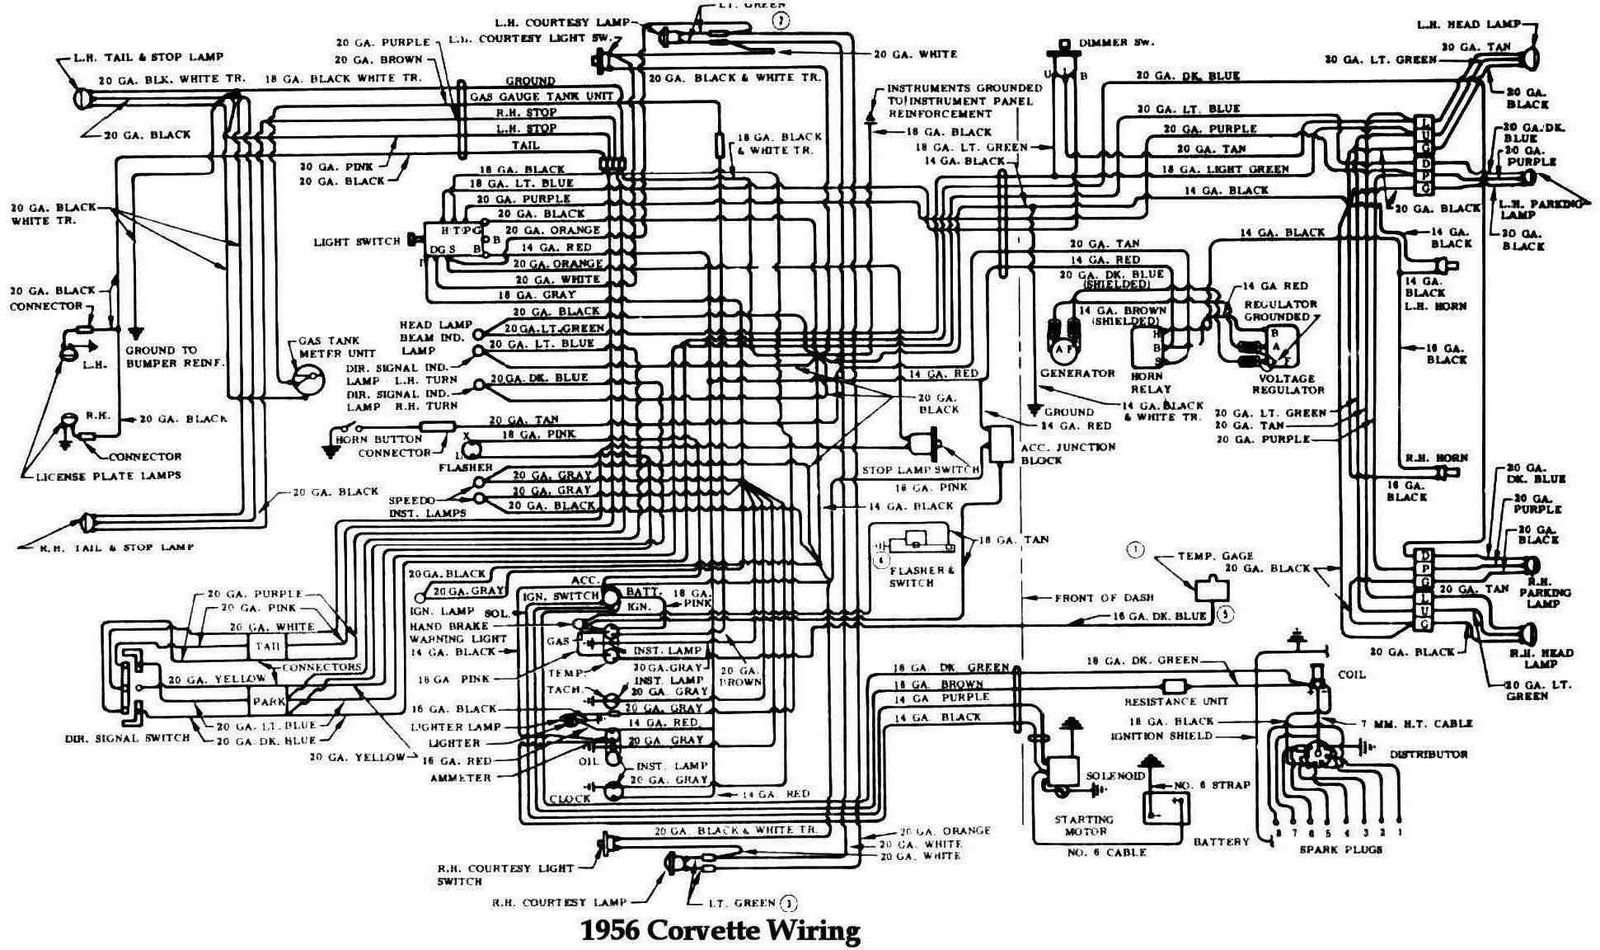 Wiring Diagram For Vauxhall Combo Van Libraries Xlr To 14 Download Libraryamazing Pictures Inspiration Everything Furthermore Interior